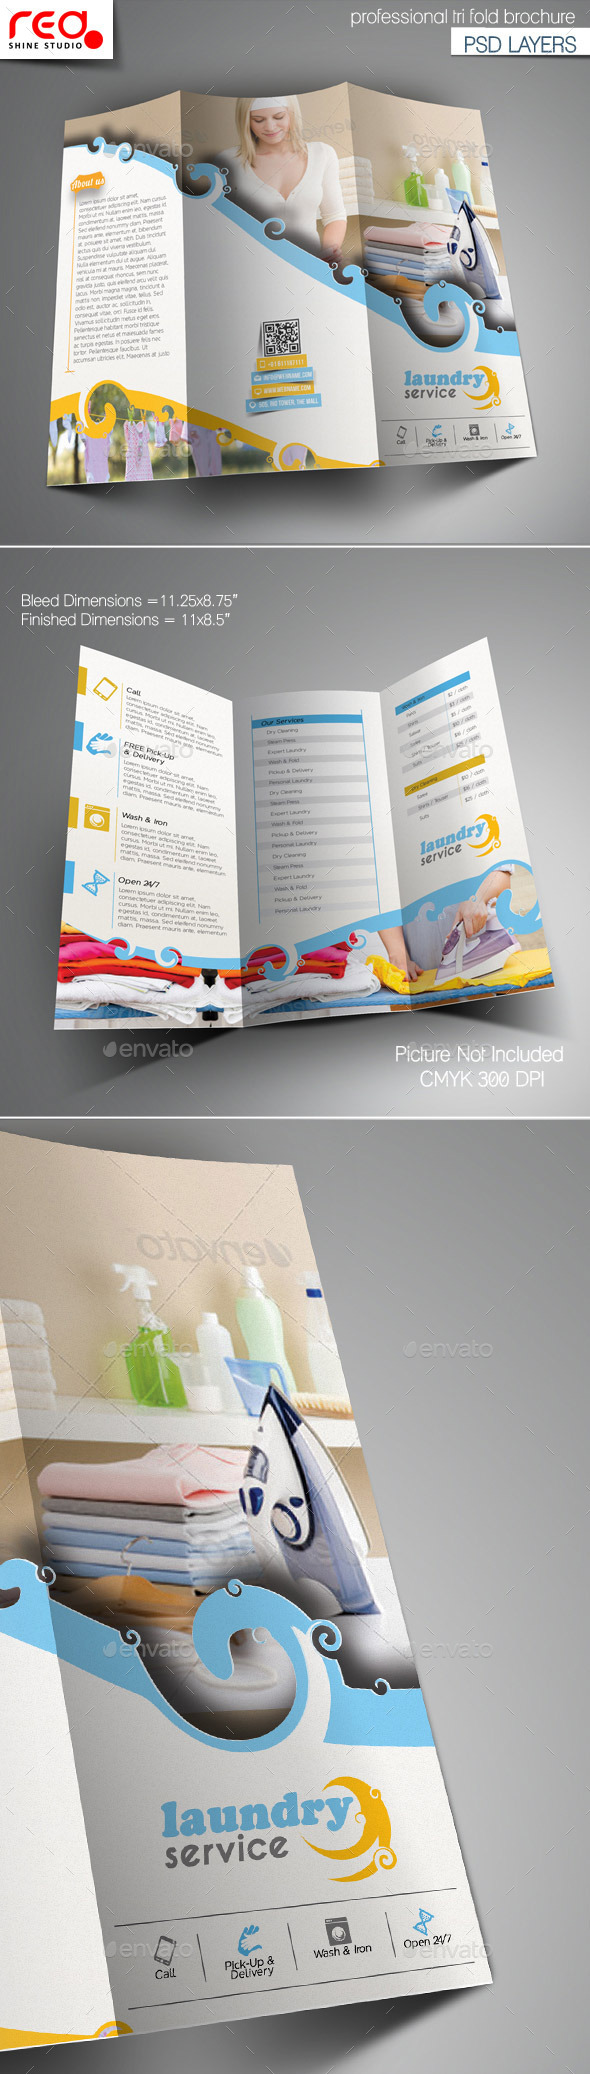 GraphicRiver Laundry Service Trifold Brochure Template 10963244